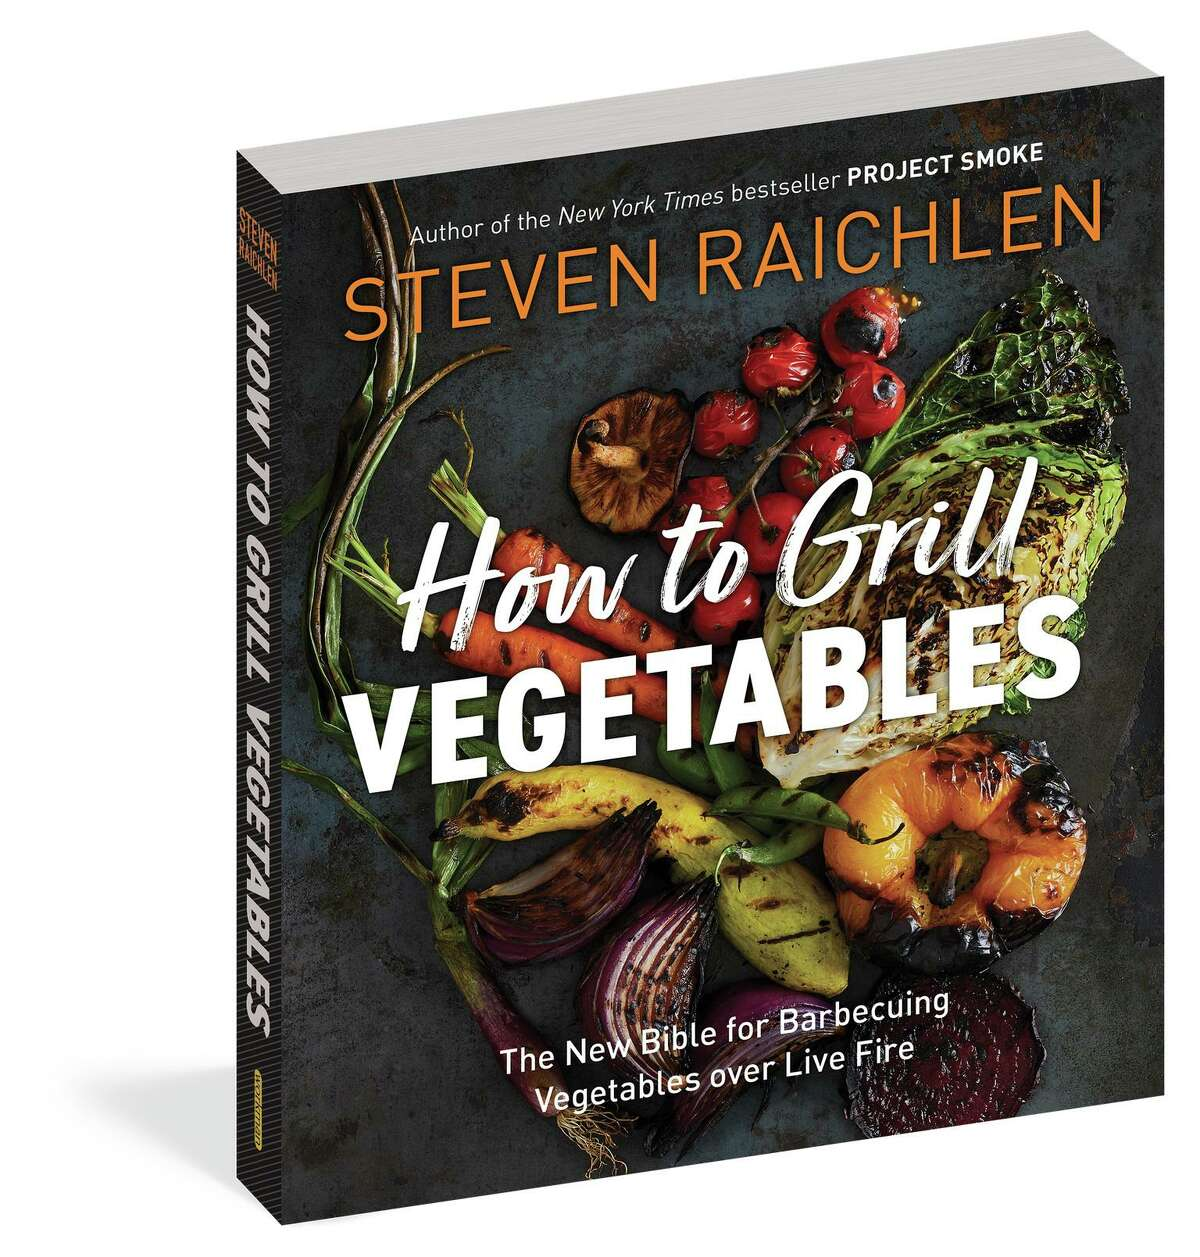 """Cover: """"How to Grill Vegetables: The New Bible for Barbecuing Vegetables over Live Fire"""" by Steven Raichlen."""